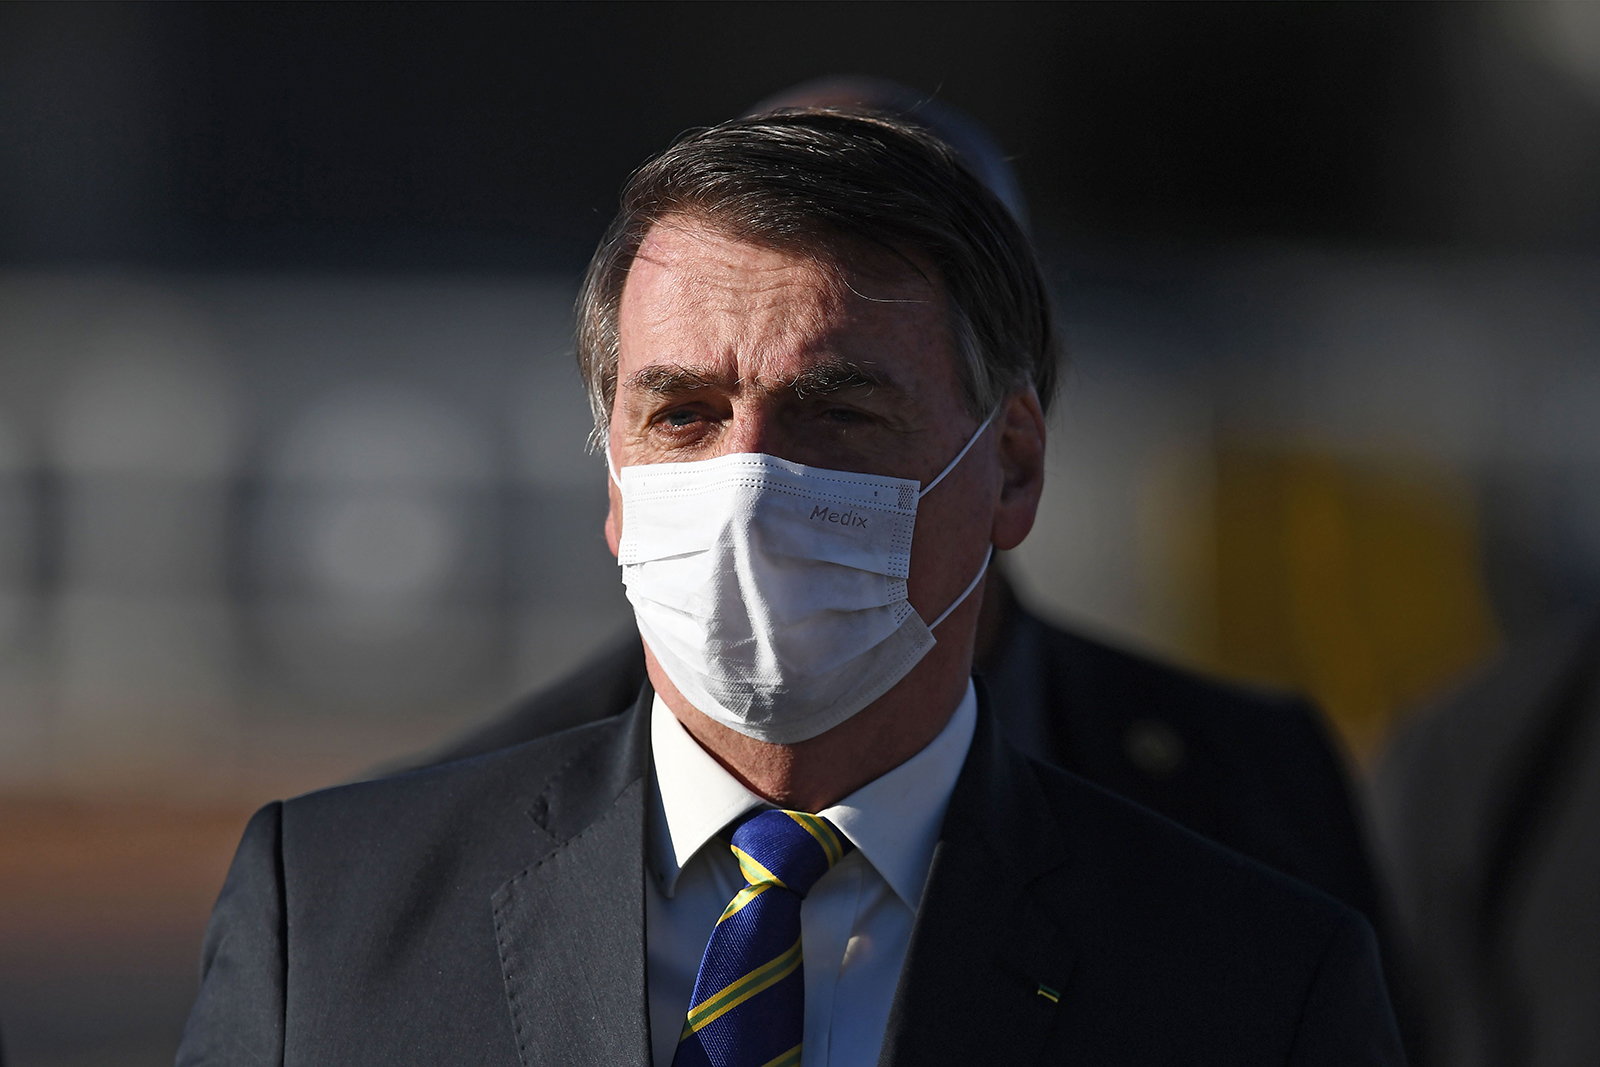 Brazilian President Jair Bolsonaro wears a face mask as he arrives at the flag-raising ceremony before a ministerial meeting at the Alvorada Palace in Brasilia, on May 12.